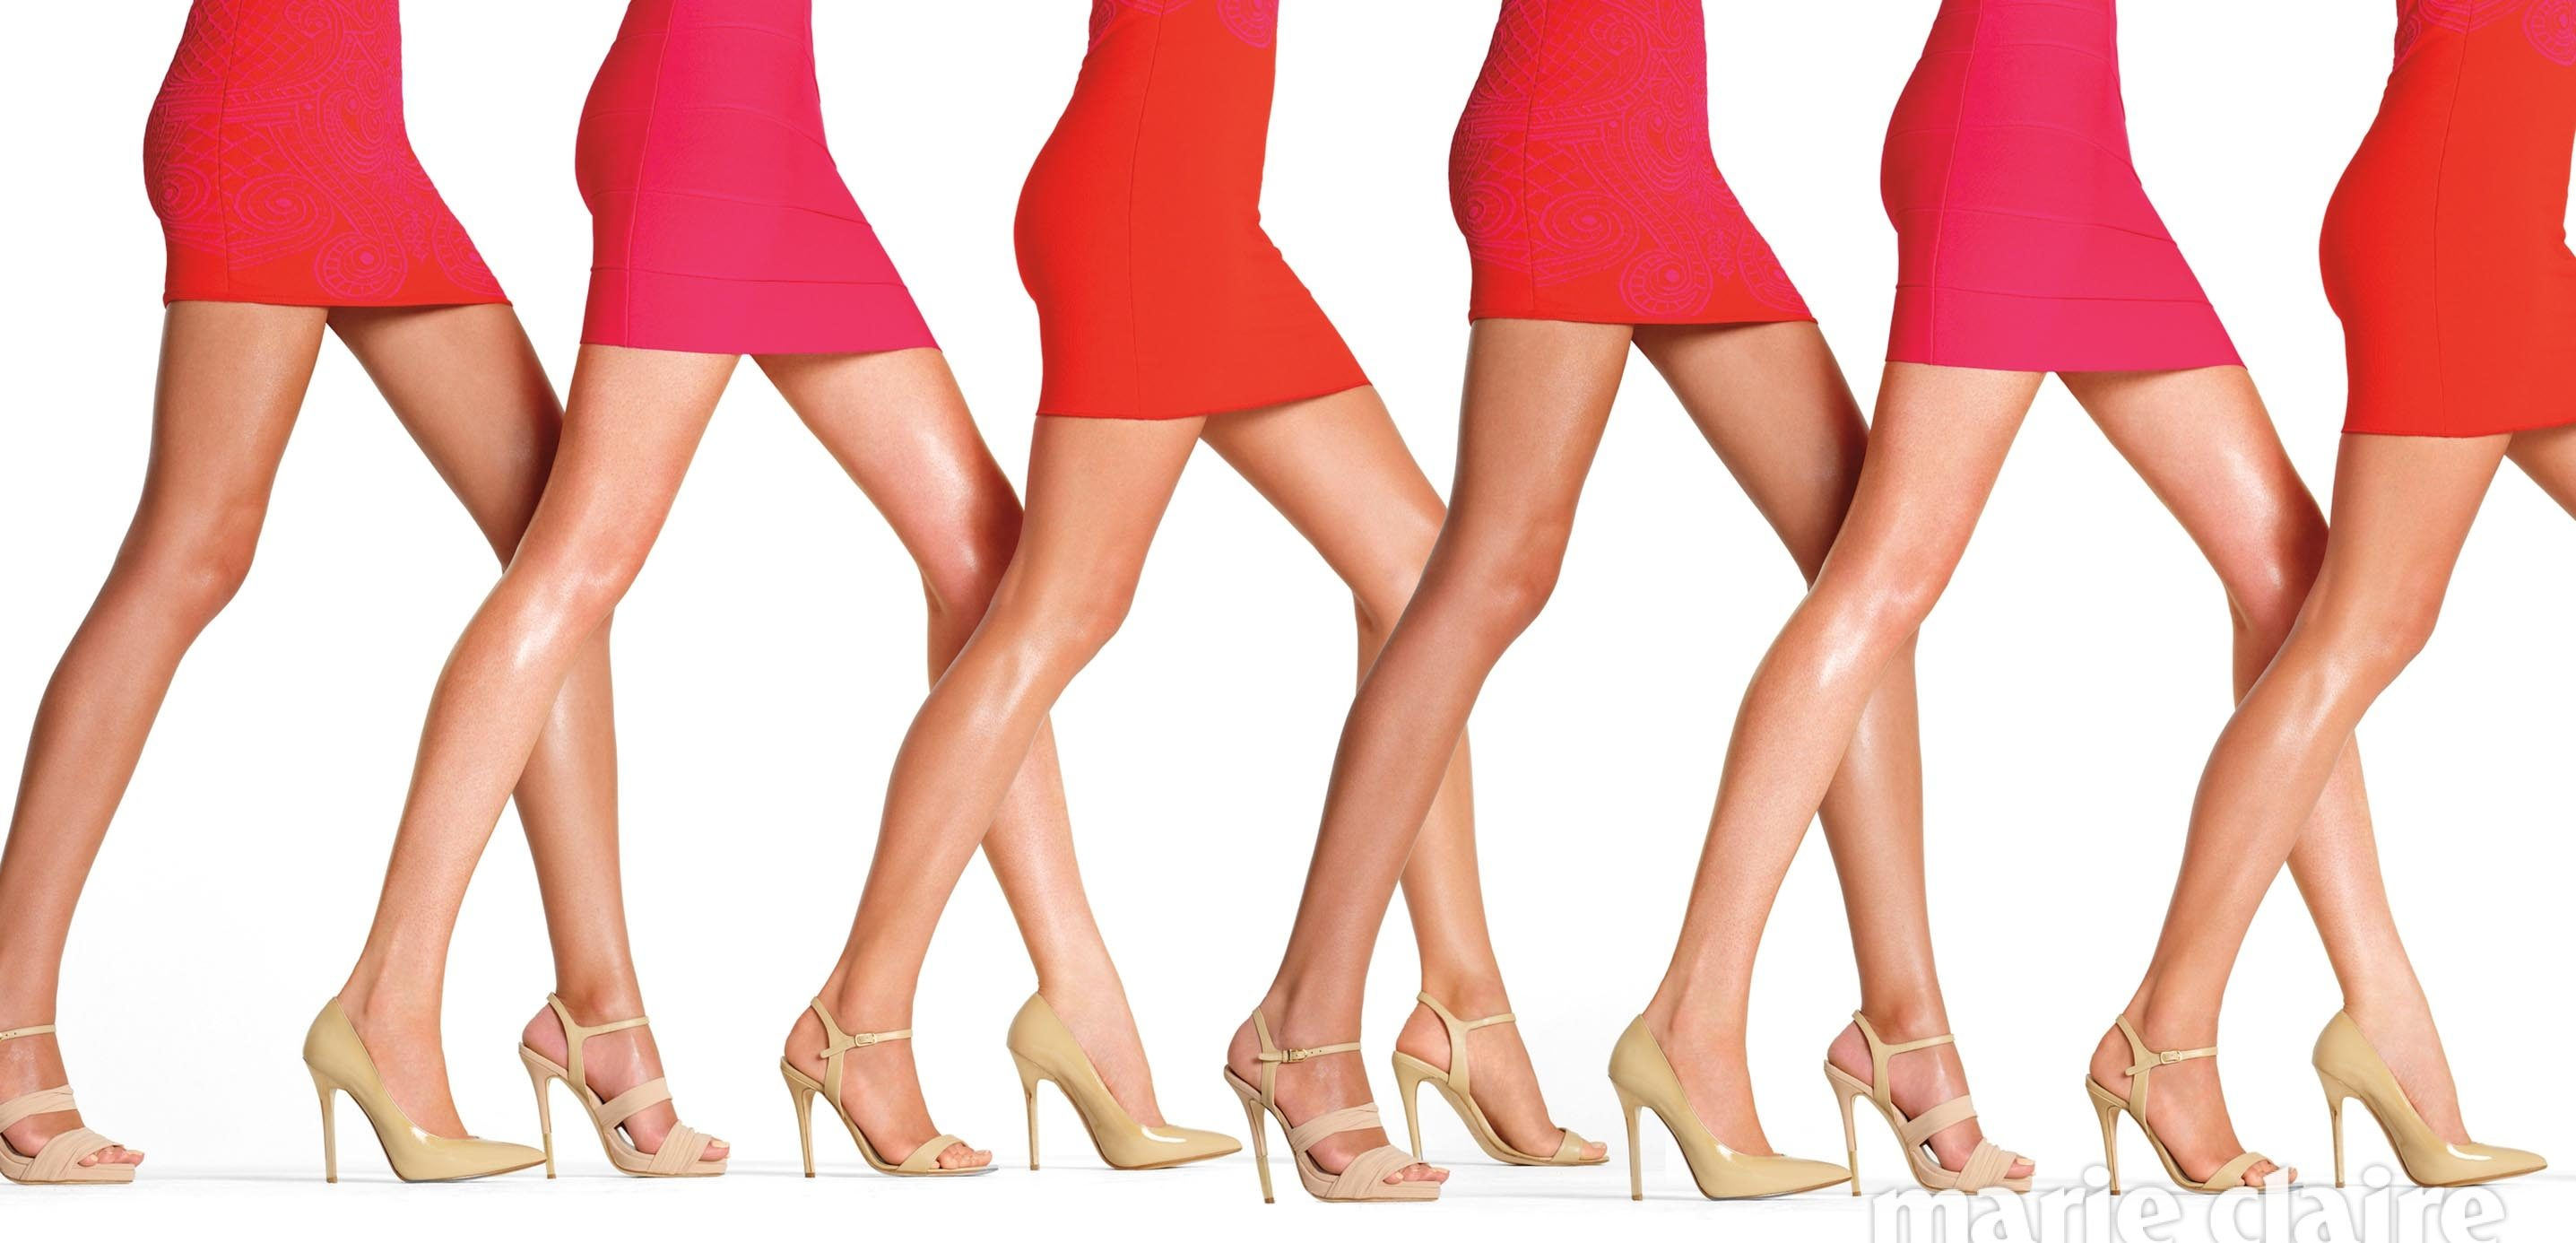 Profile of women's legs in short skirts